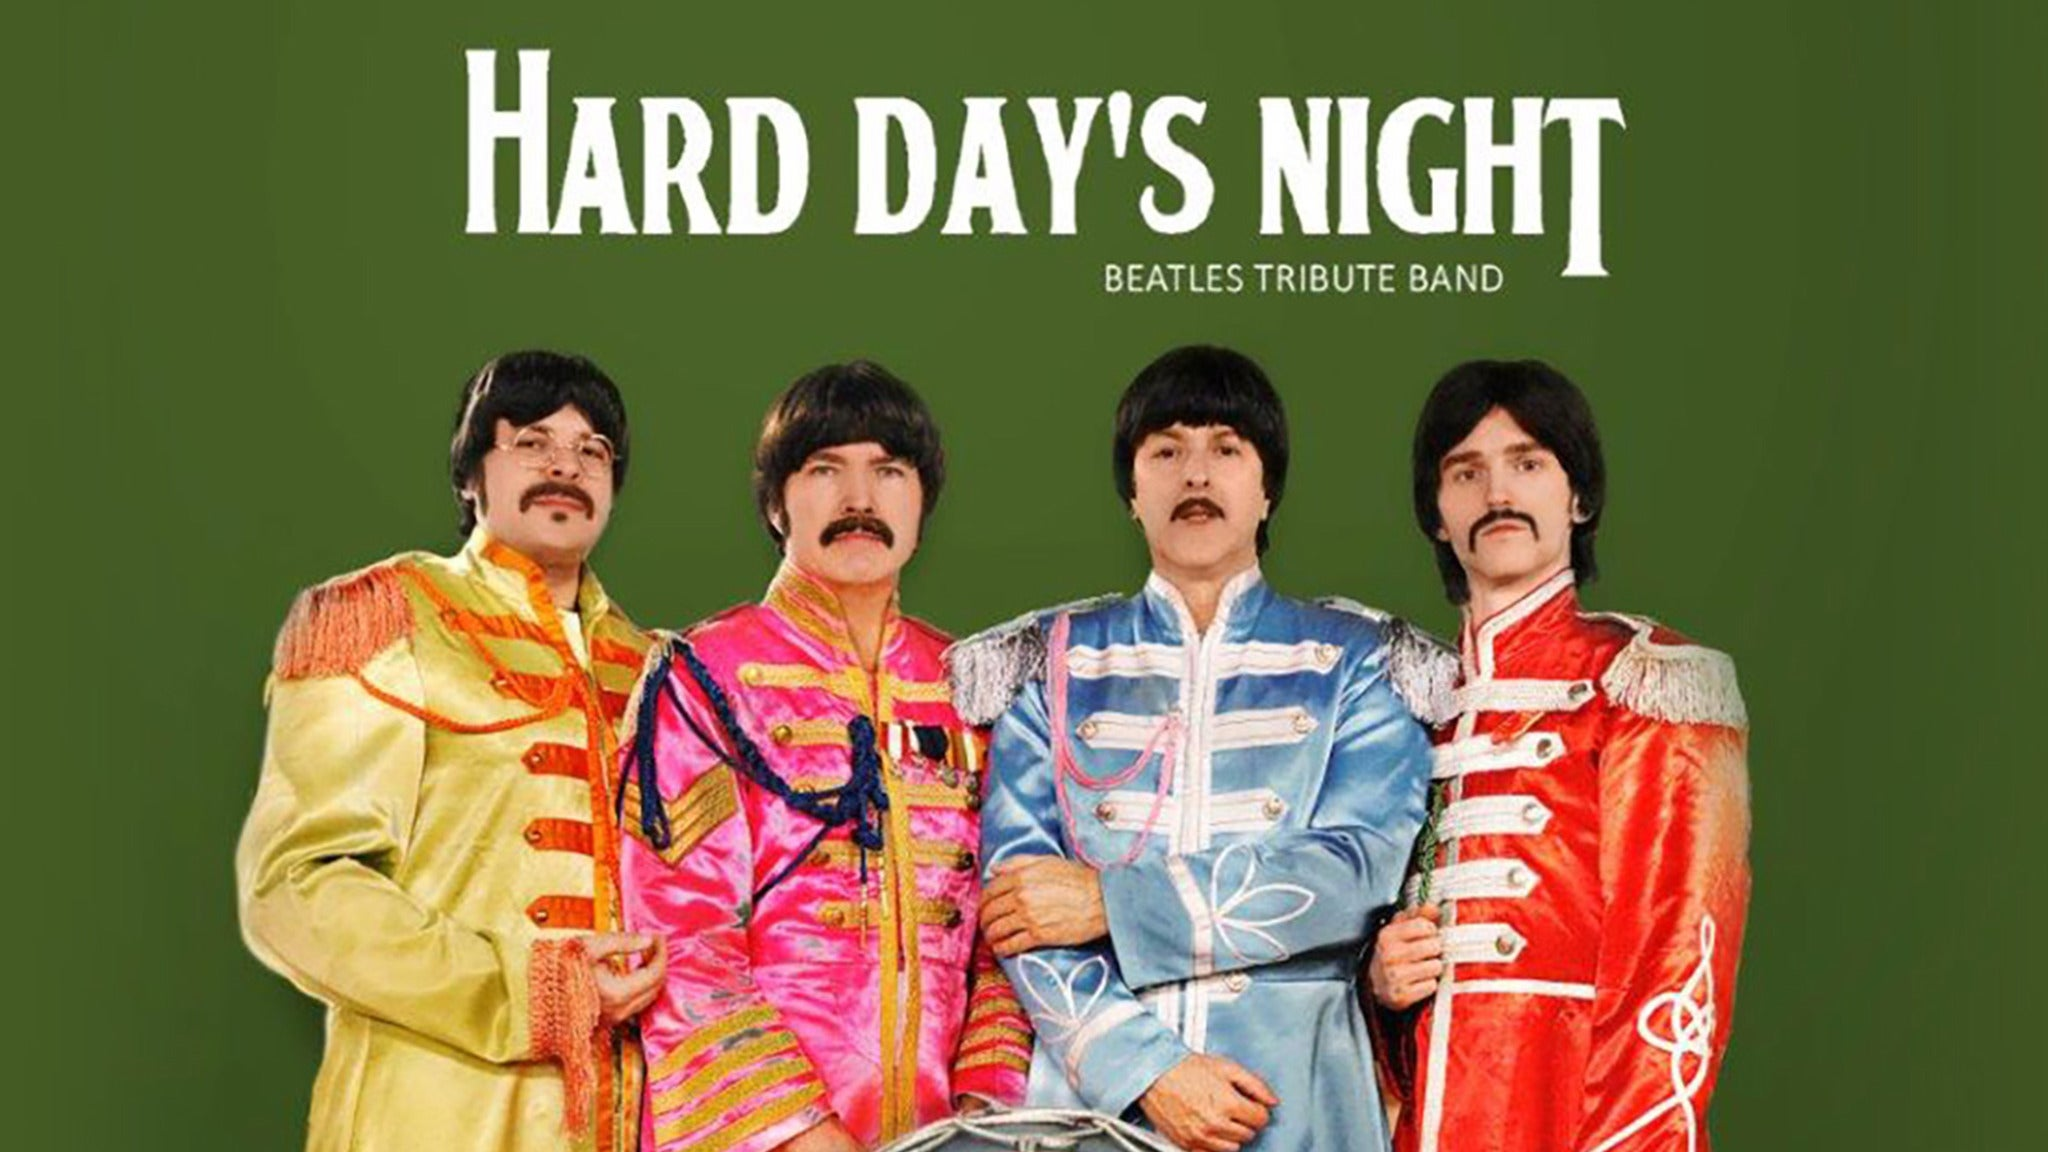 The Beatles Tribute by Hard Days Night